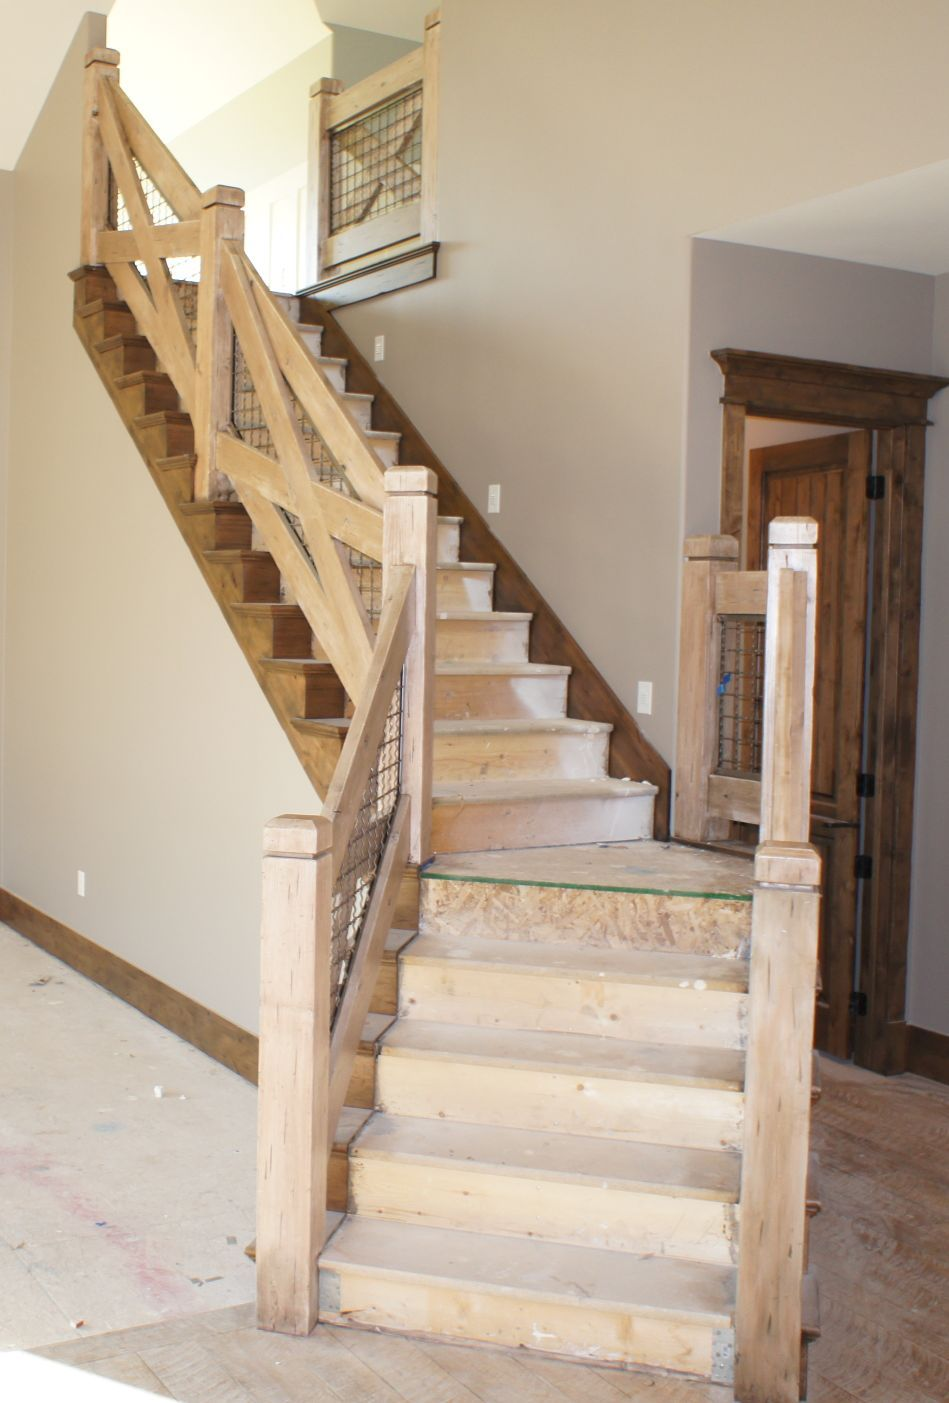 Low Cost Stair Railing Ideas Best Quality Home Design And | New Stair Railing Cost | Staircase Ideas | Glass Railing | Staircase Design | Stair Parts | Wooden Stairs